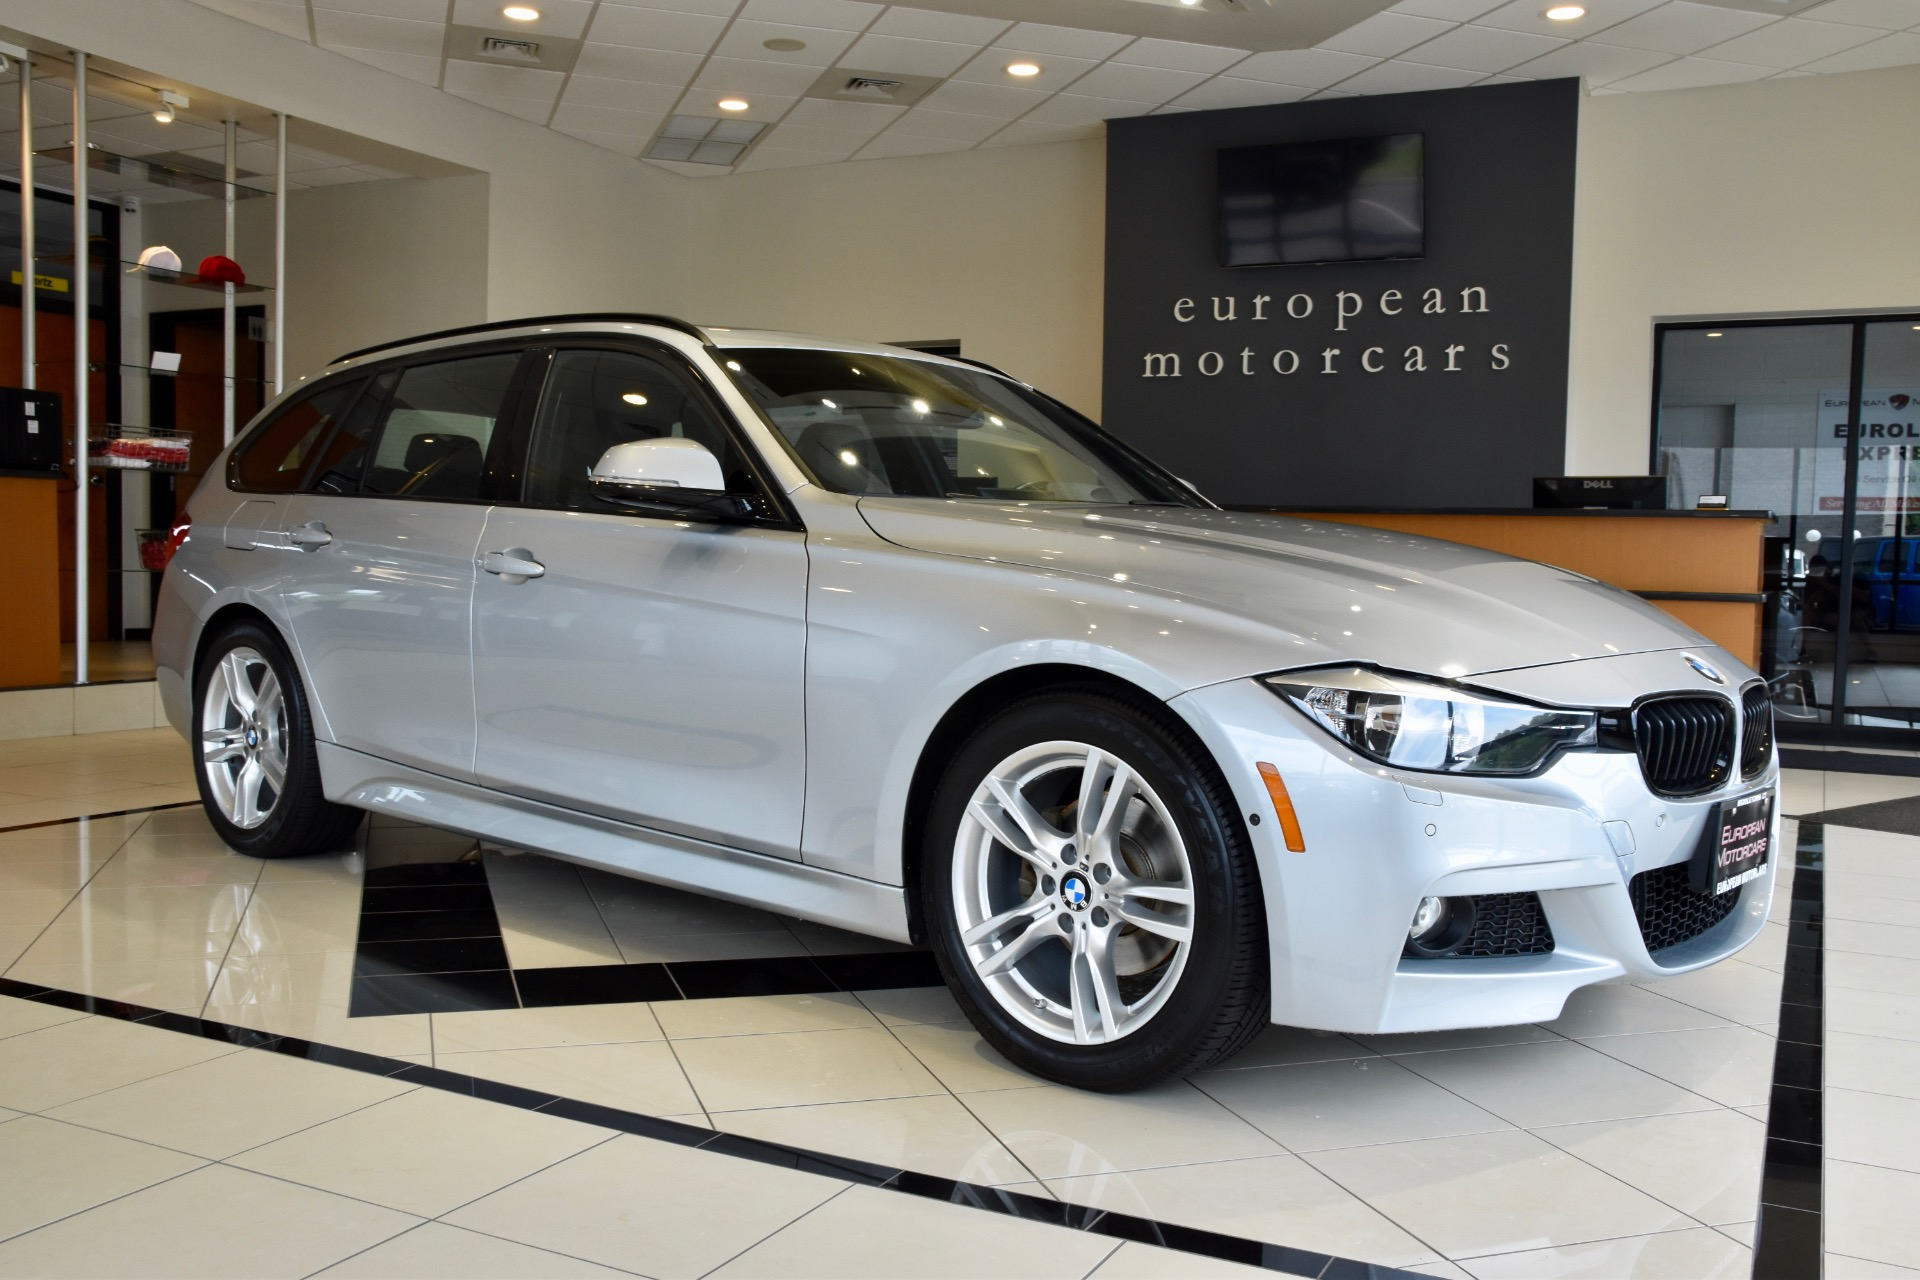 2015 bmw 3 series turbo diesel wagon 328d xdrive for sale near middletown ct ct bmw dealer. Black Bedroom Furniture Sets. Home Design Ideas